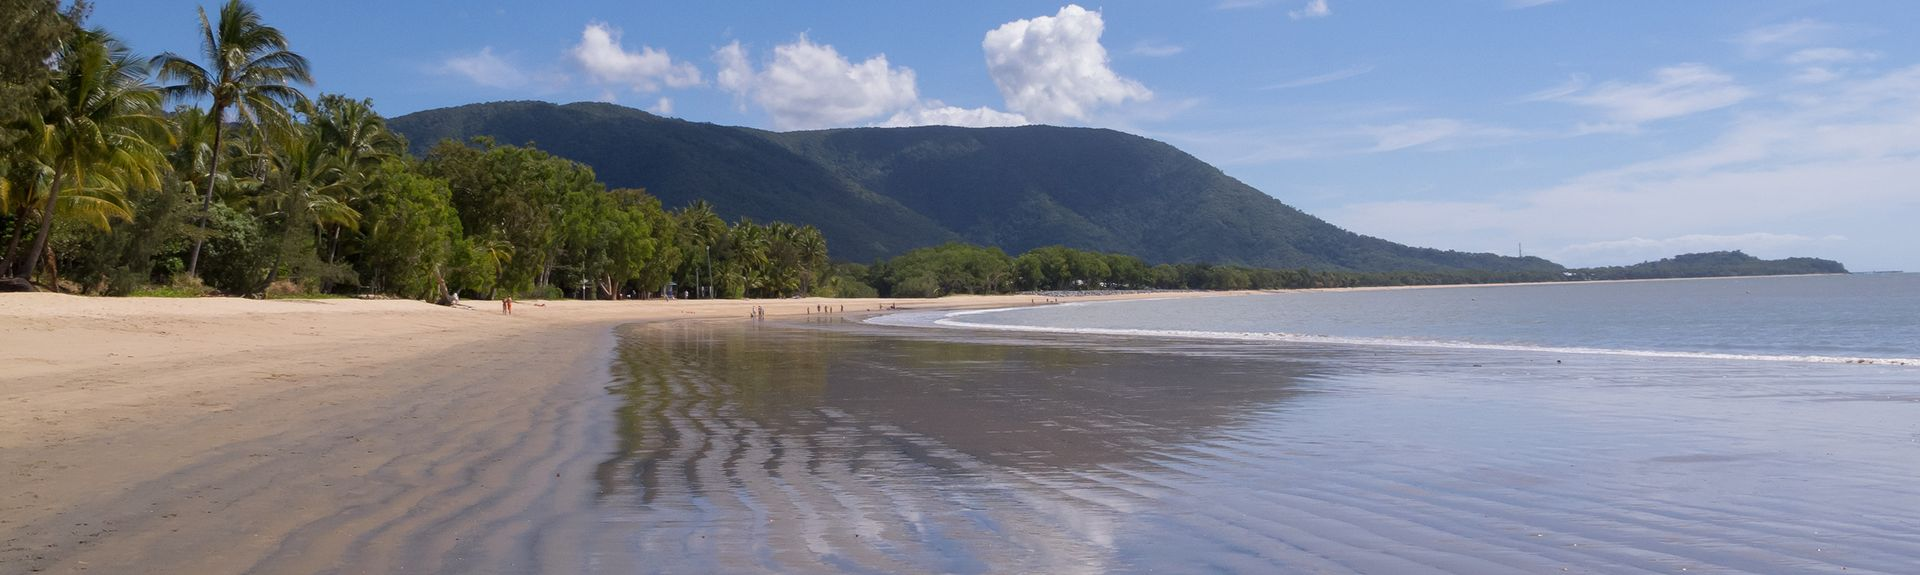 Trinity Beach, Cairns, Cairns, Queensland, Australie